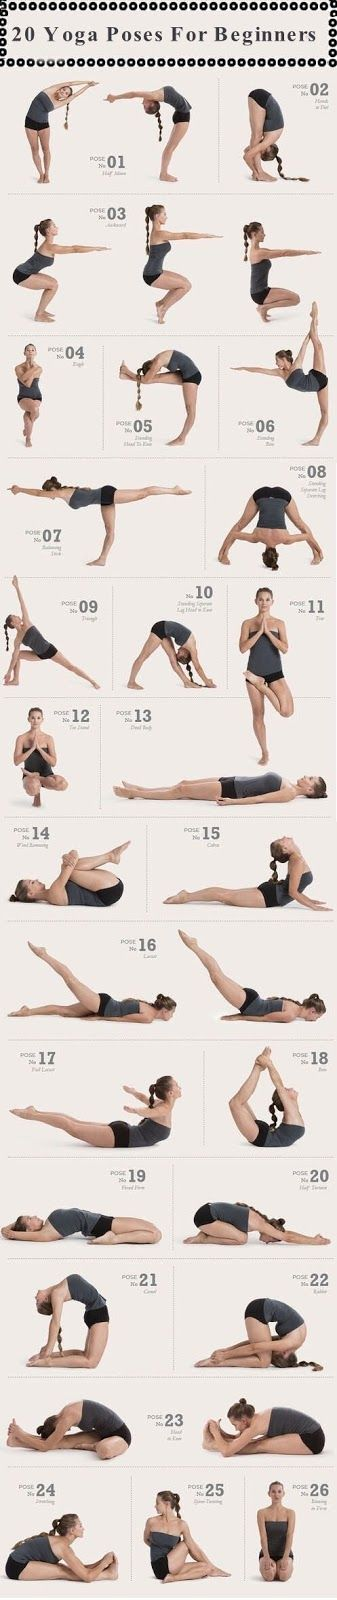 "20 Amazing Yoga Poses For Beginners Looks like I'm behind from the ""beginner"" stage, but this is a great Goals list."